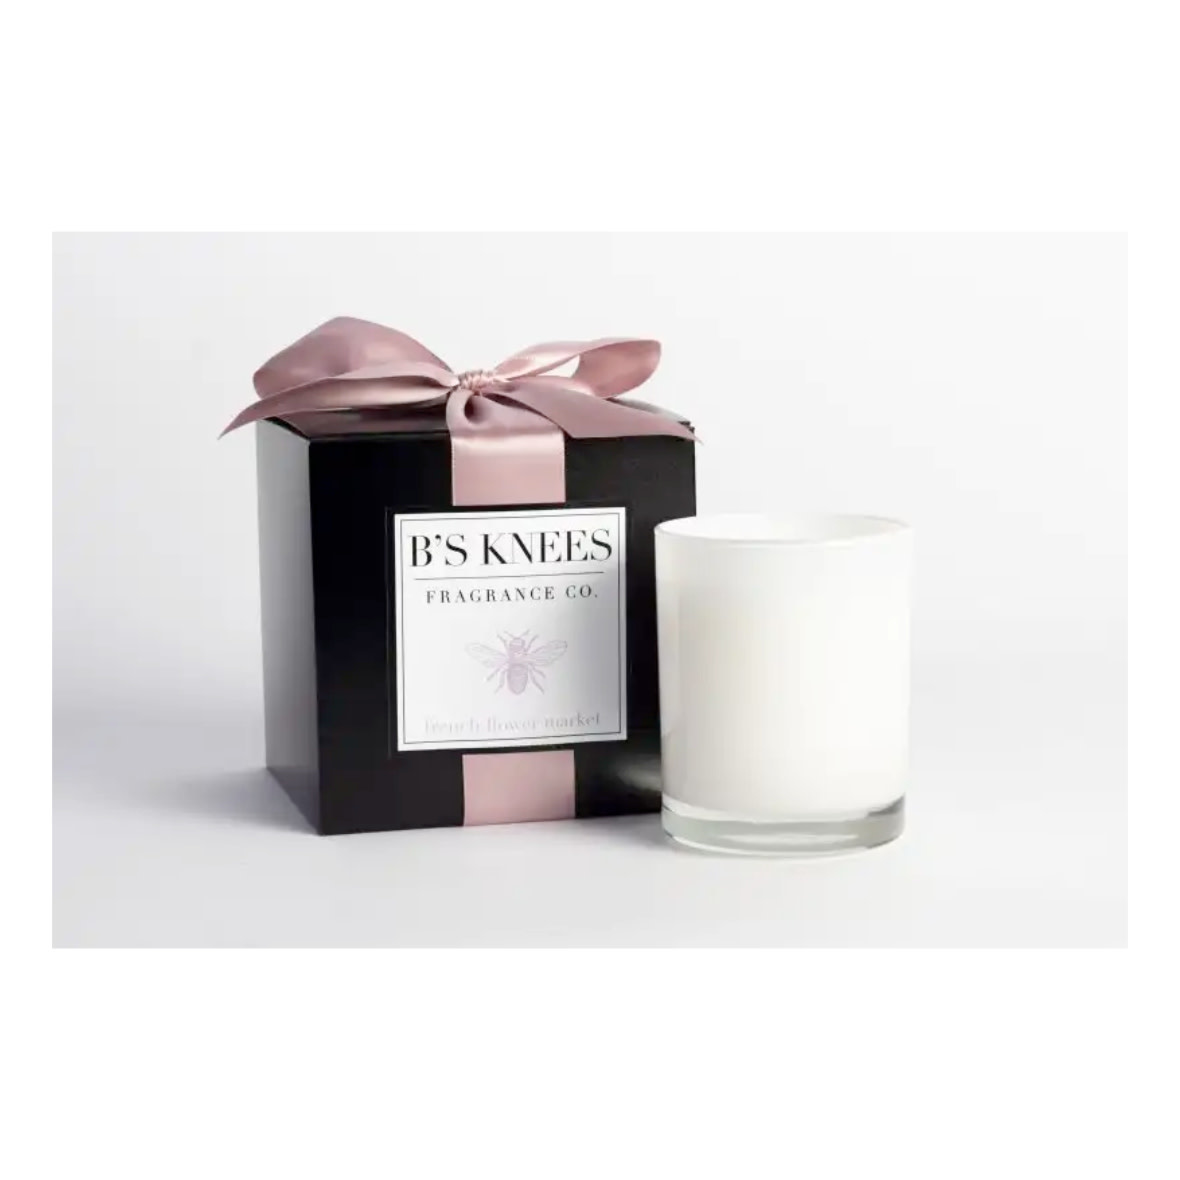 B's Knees Fragrance Co. B's Knees French Flower Market 1 Wick White Candle